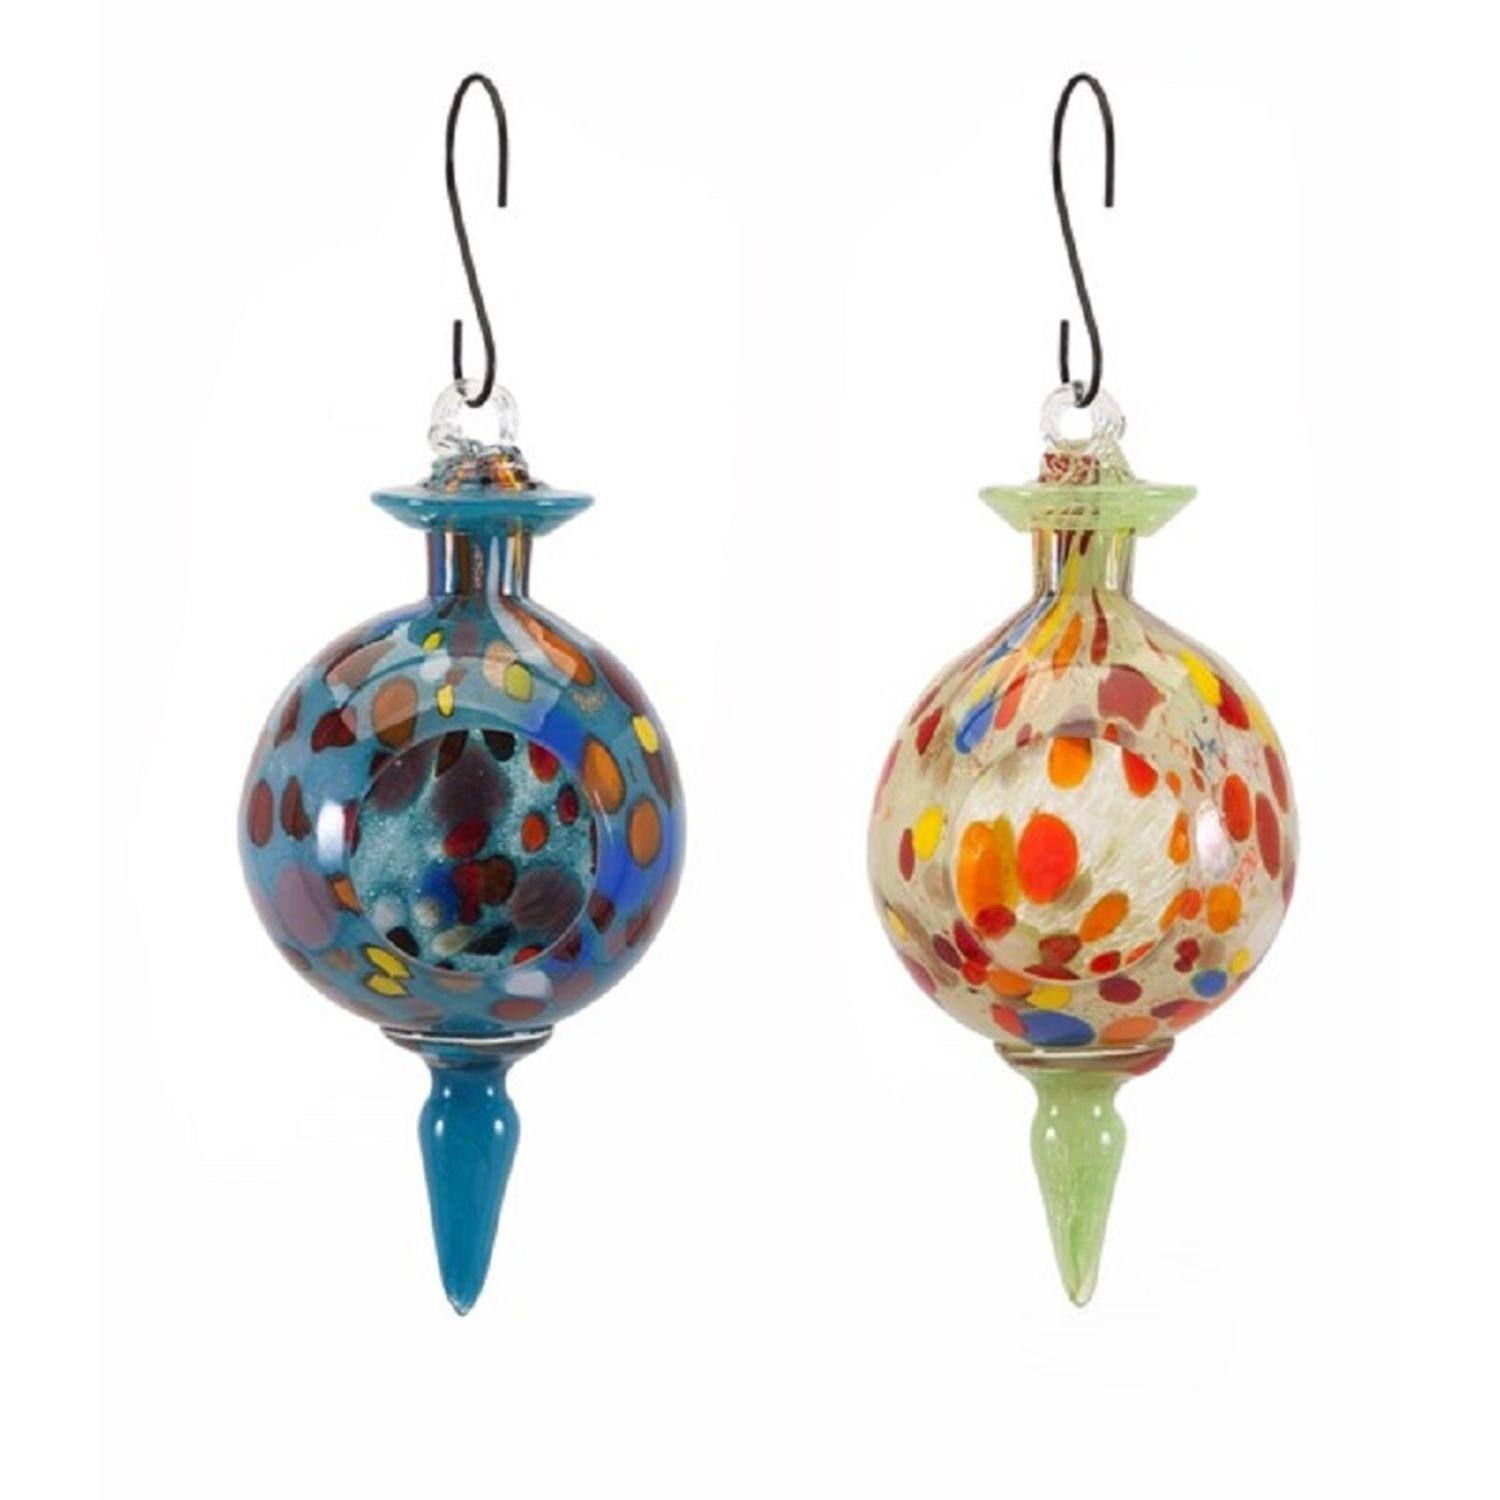 CC Home Furnishings Set of 2 Multi-color Handcrafted Artisan Glass Hanging Bird Feeders